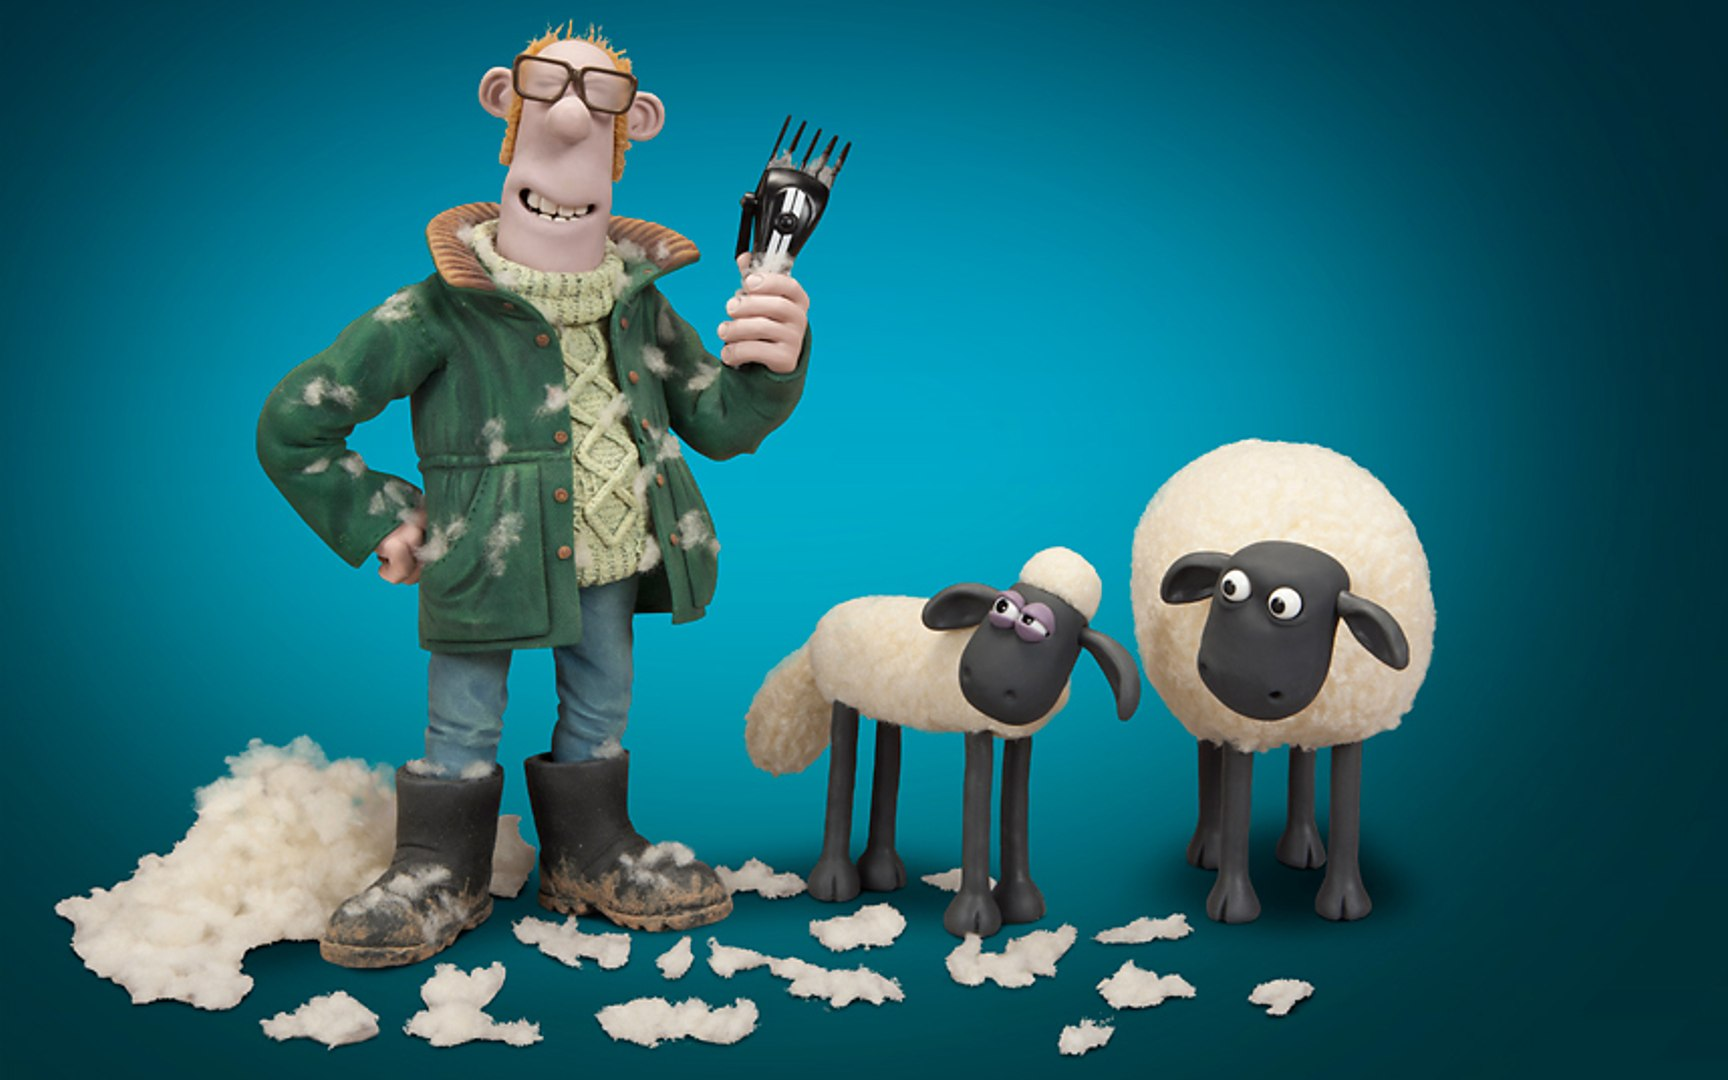 Shaun the Sheep Movie behind the scenes, Shaun the Sheep Movie full movie [2015] in english with sub